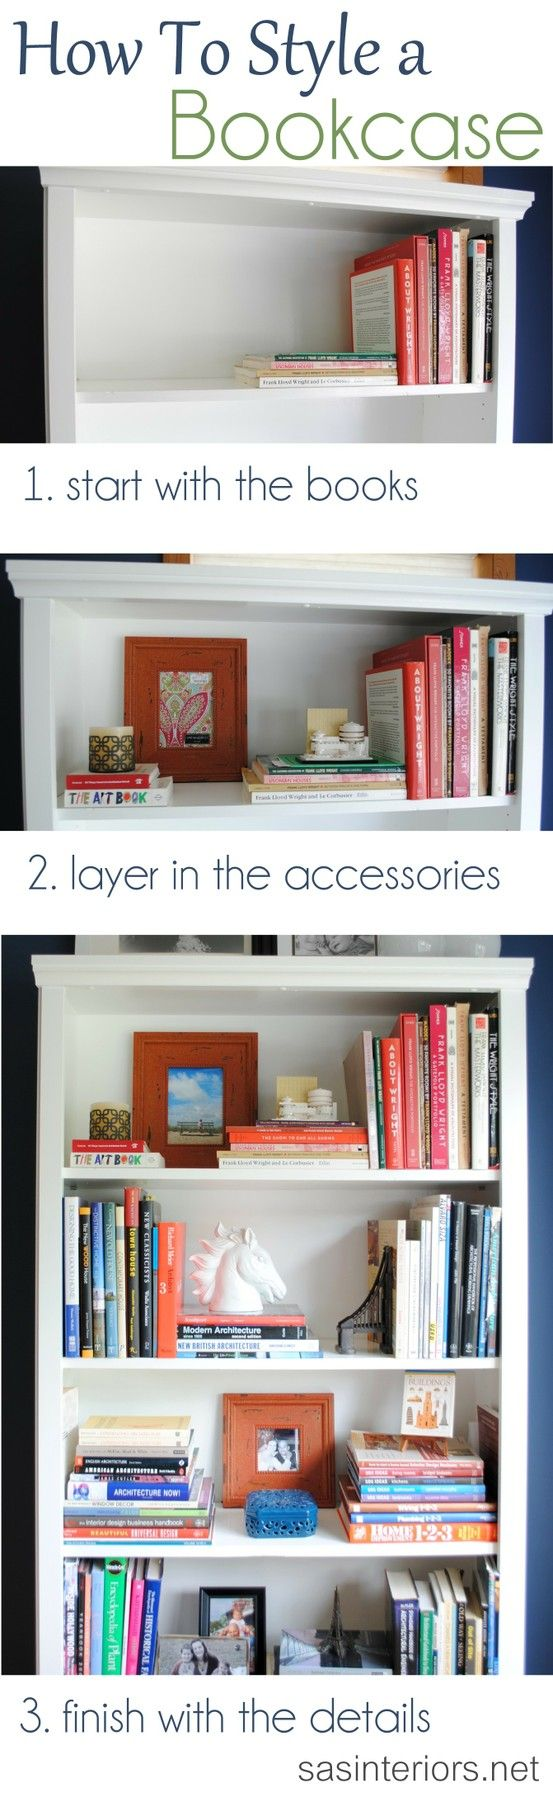 A breakdown on how-to style a bookcase. Inspiration tips and ideas on how and where to begin accessorizing a bookcase or shelf in your home (Note from Ashley: The problem with this is that my accessories eventually look like they're being pinned to the other side of the bookshelf because I have so many books)